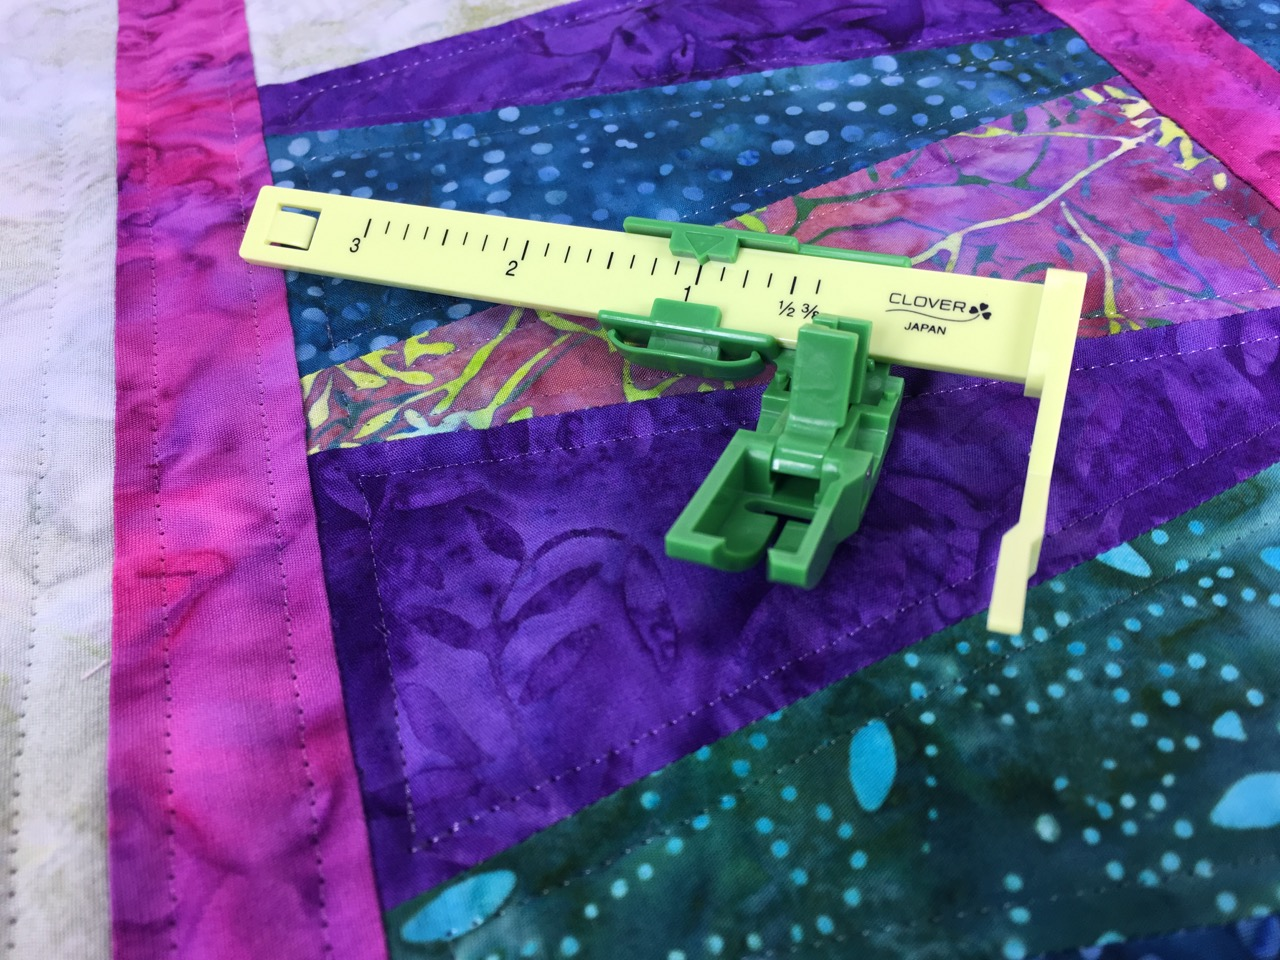 The Ultimate Quilt 'n Stitch Presser Foot by Nancy Zieman Productions, LLC for Clover